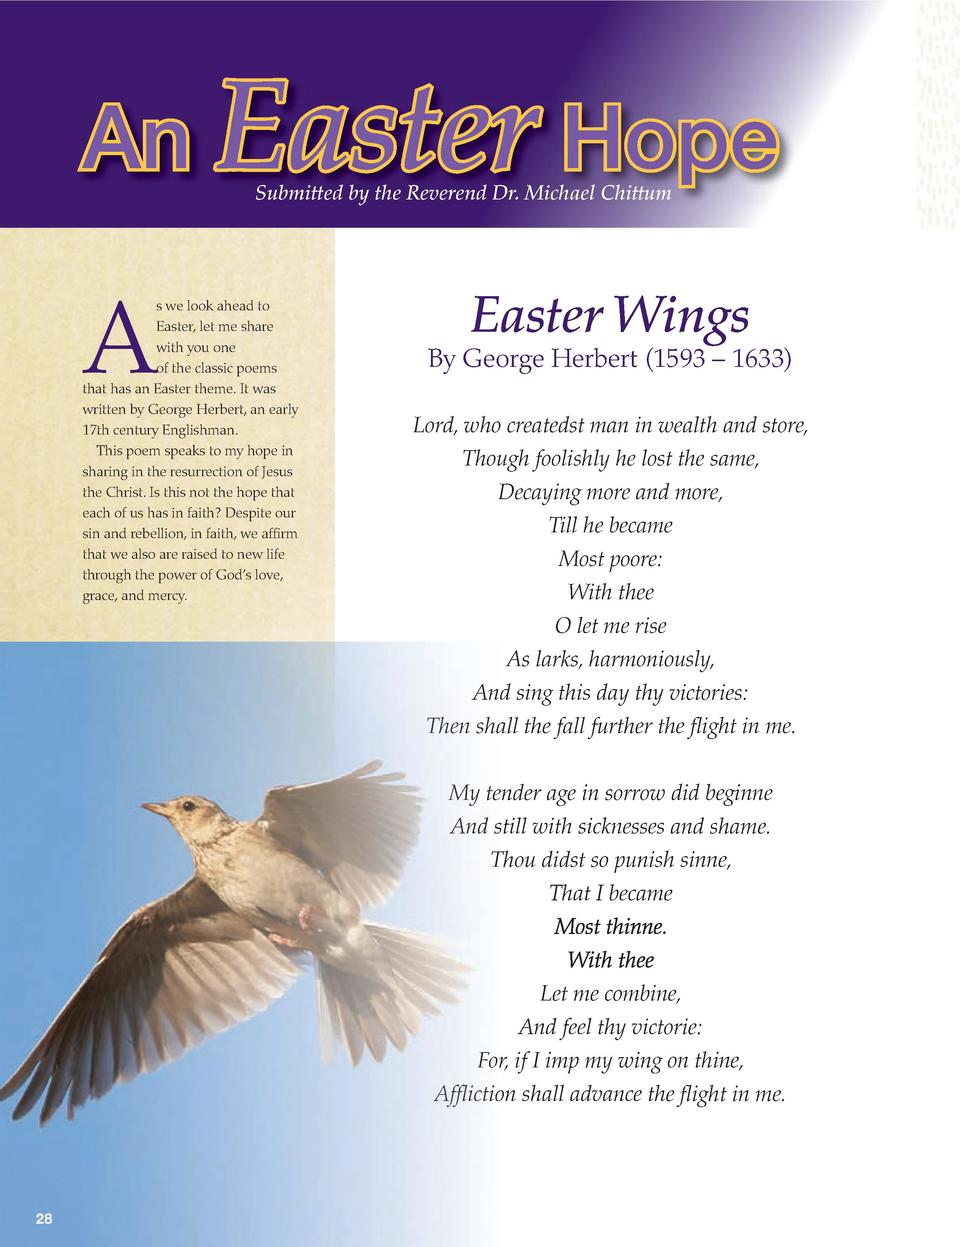 An Easter Hope Submitted by the Reverend Dr. Michael Chittum  A  s we look ahead to Easter, let me share with you one of t...